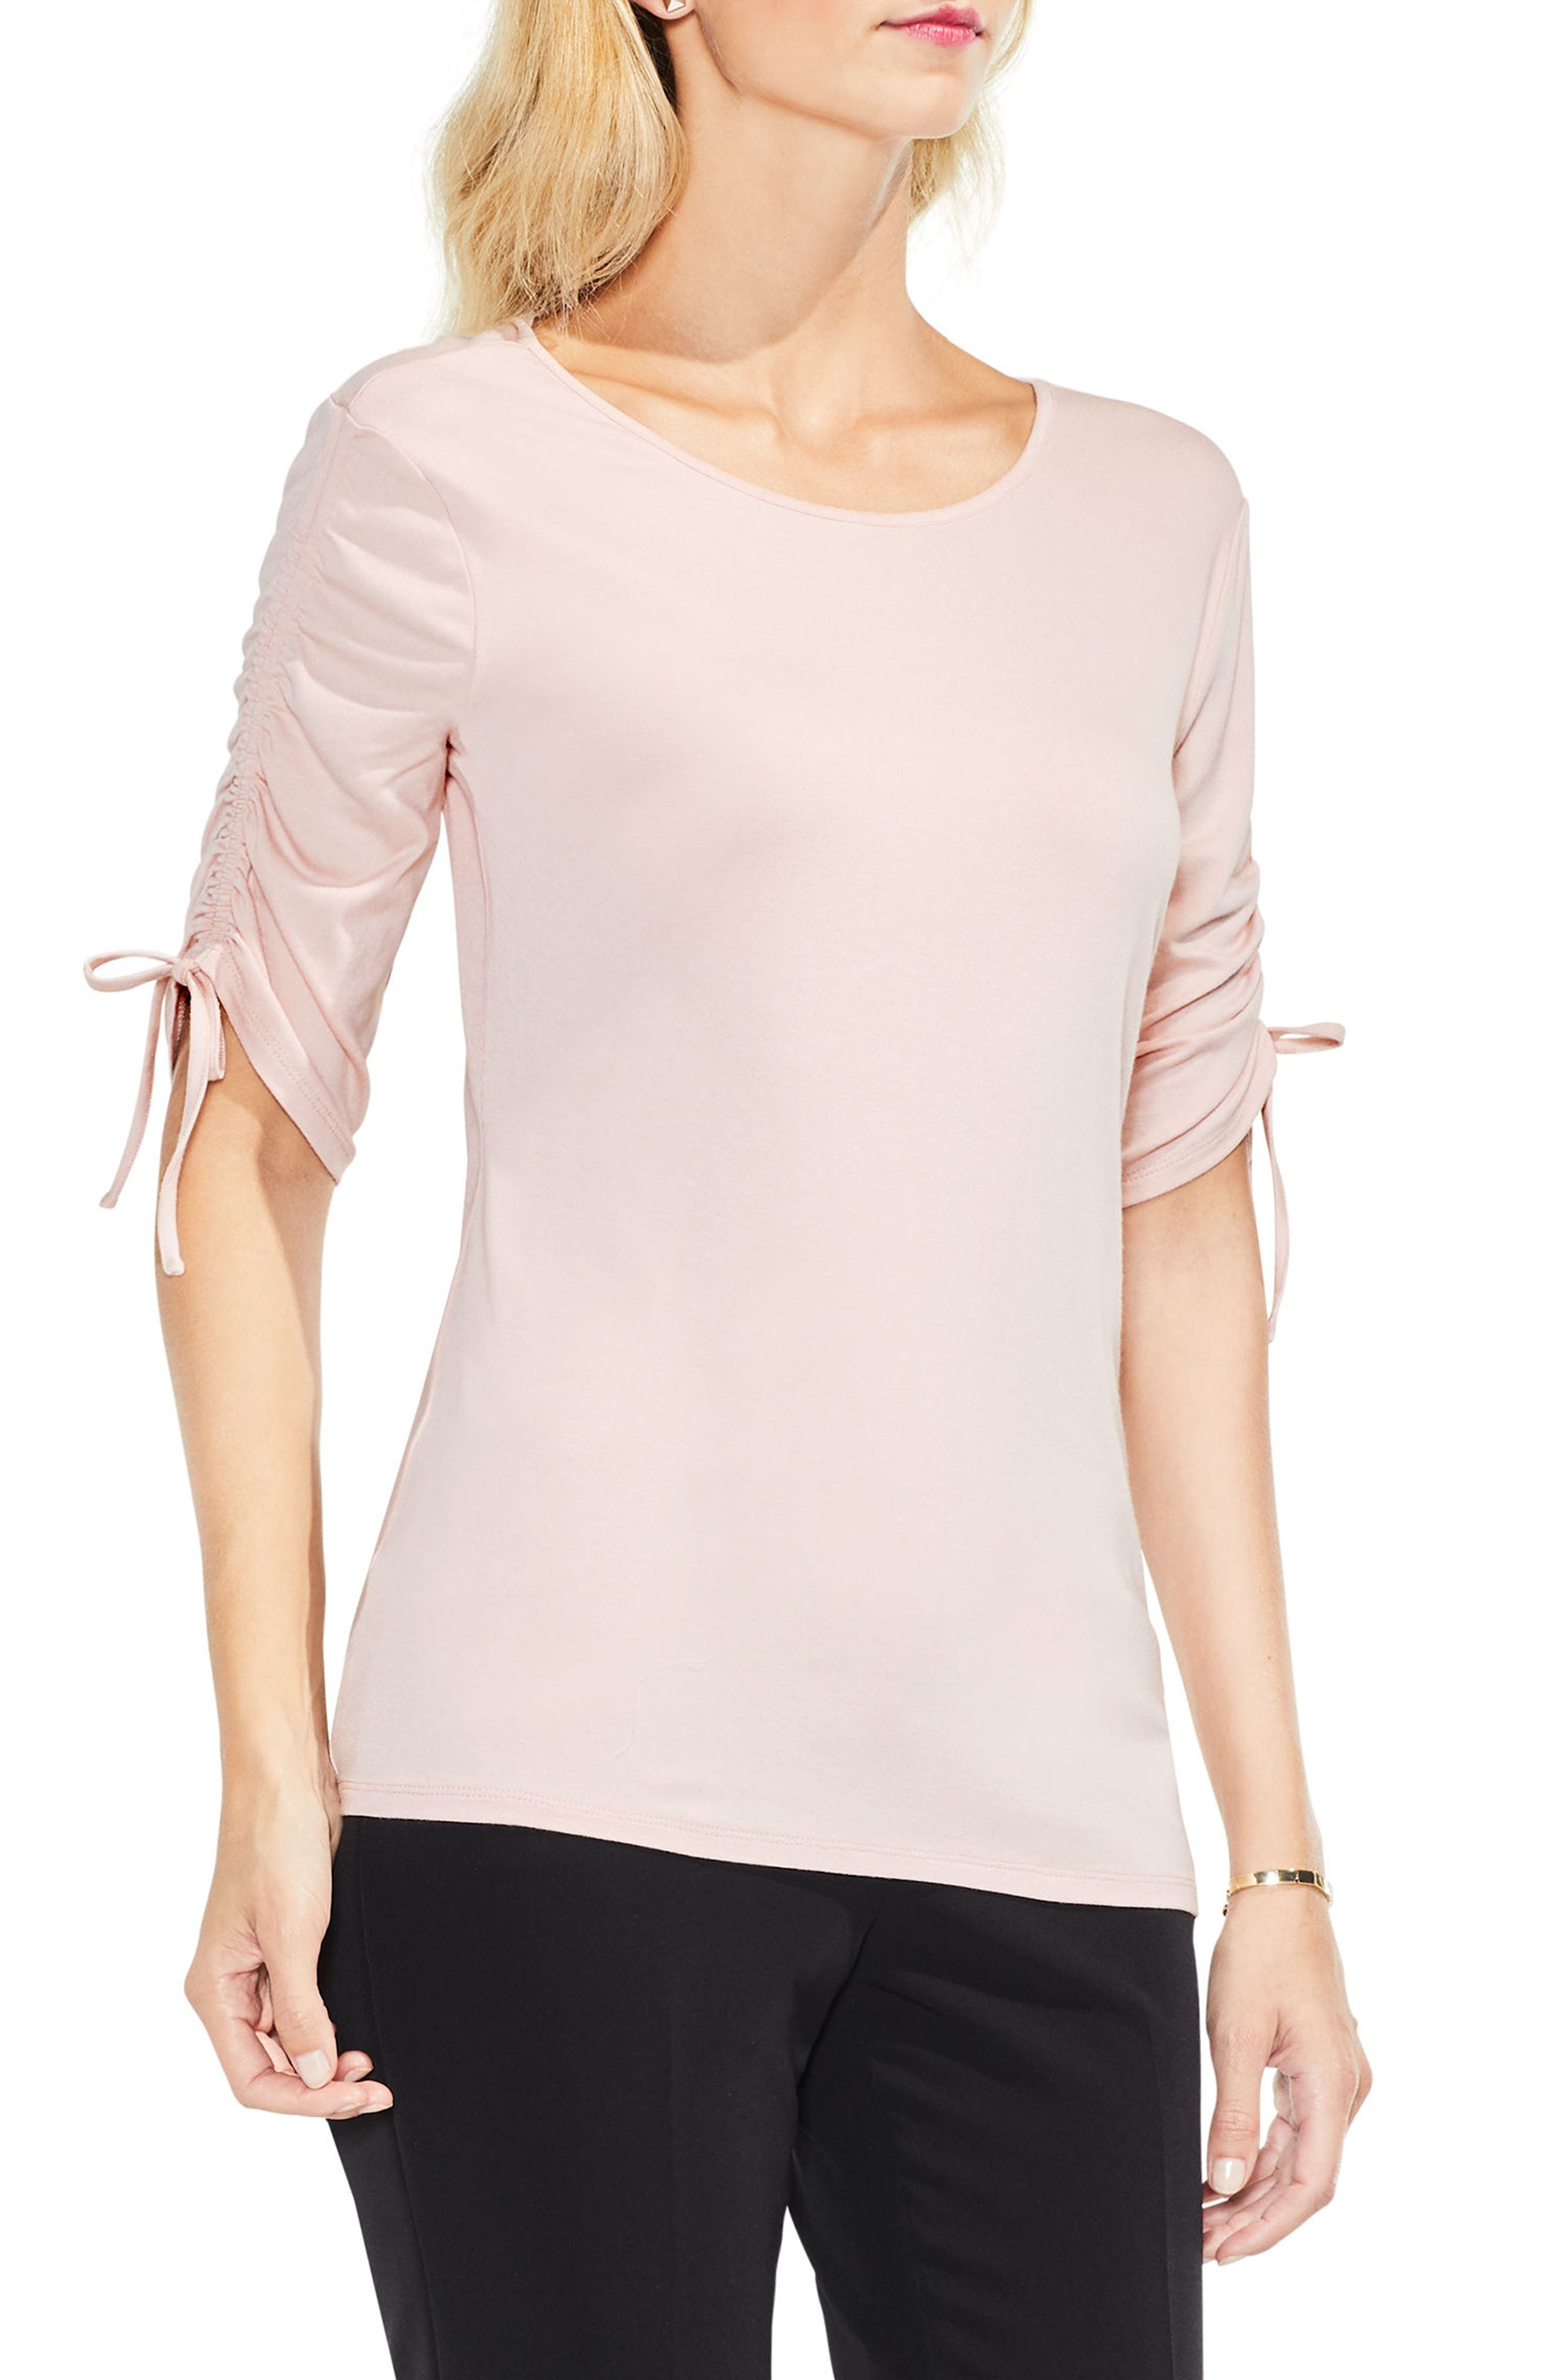 Main Image - Vince Camuto Ruched Elbow Sleeve Top (Regular & Petite)